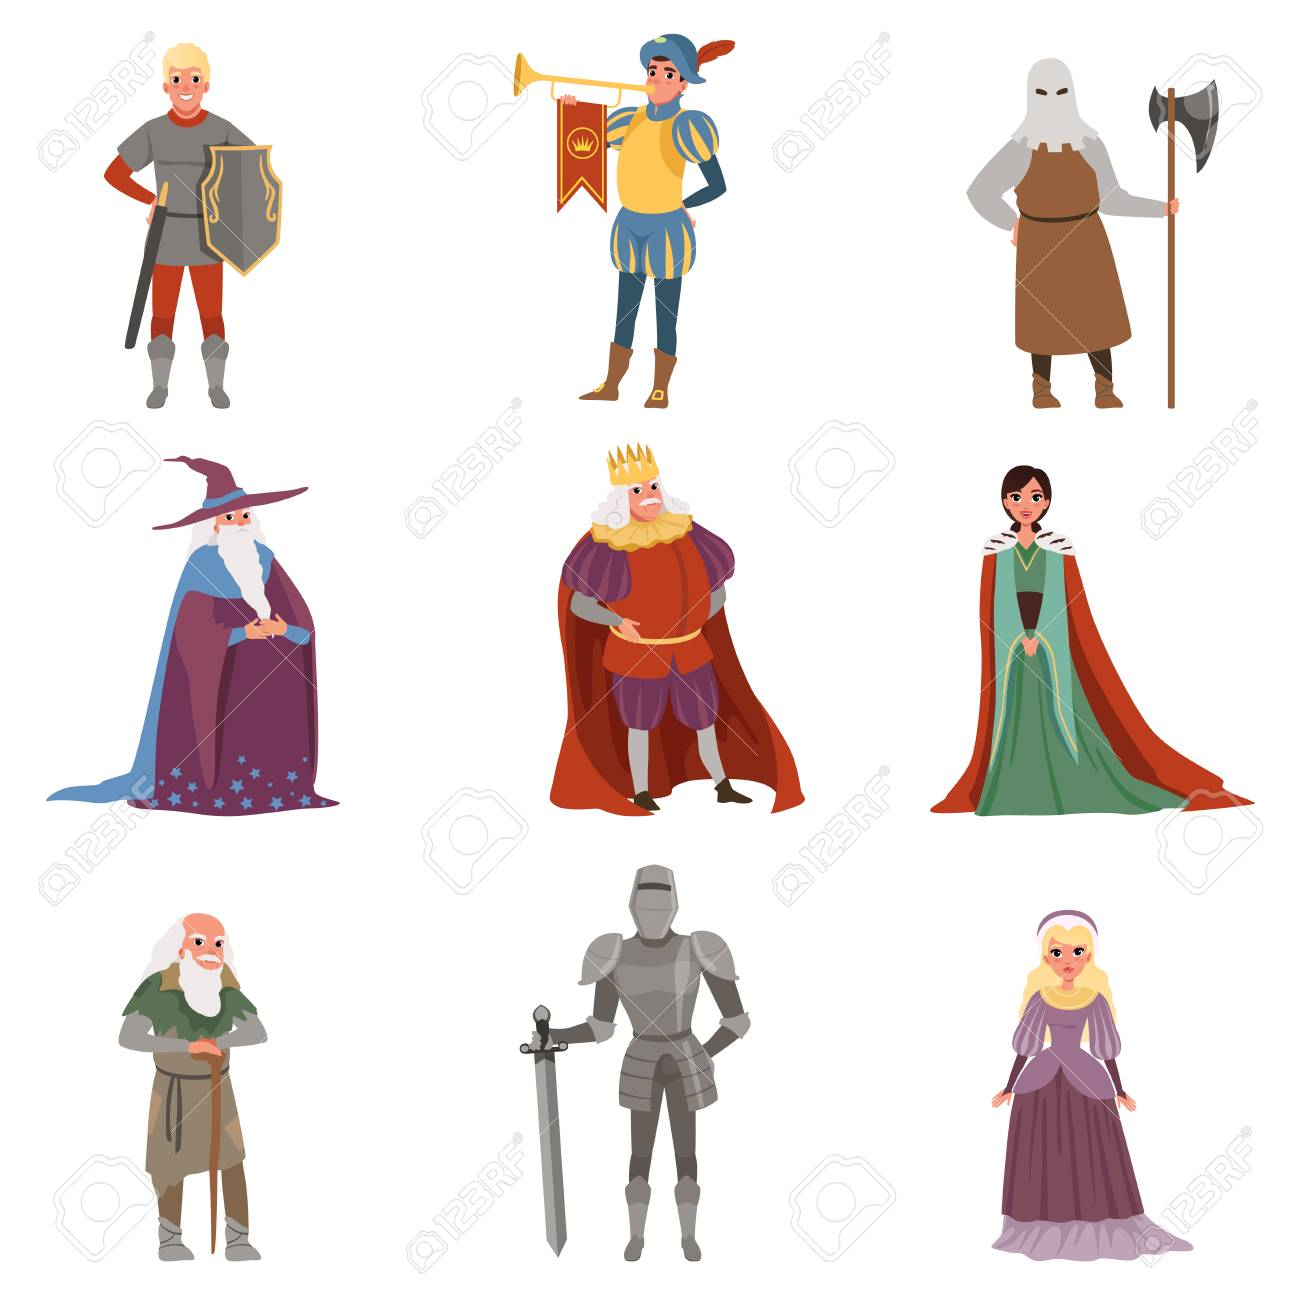 Medieval people characters set, European middle ages historic period elements vector Illustrations on a white background - 95462615